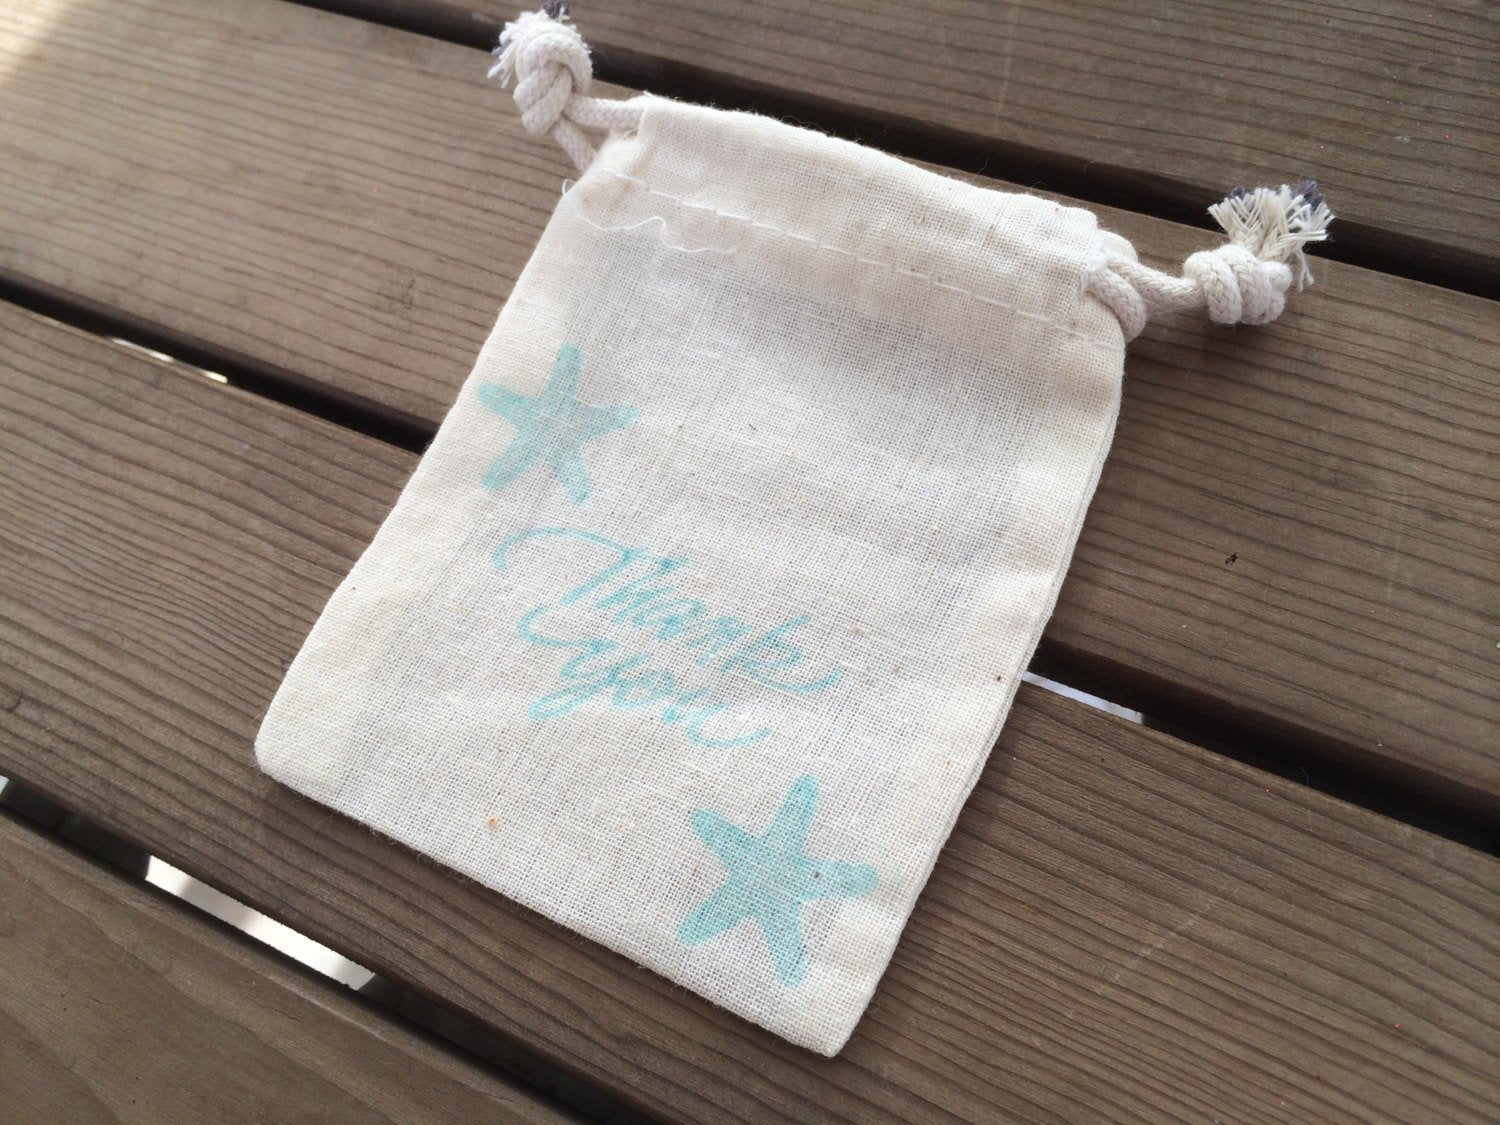 10 Starfish Thank You Bag, Beach Wedding Favor Bag, Beach Wedding Thank You Bag, Thank You Bags, Small Thank You Bags